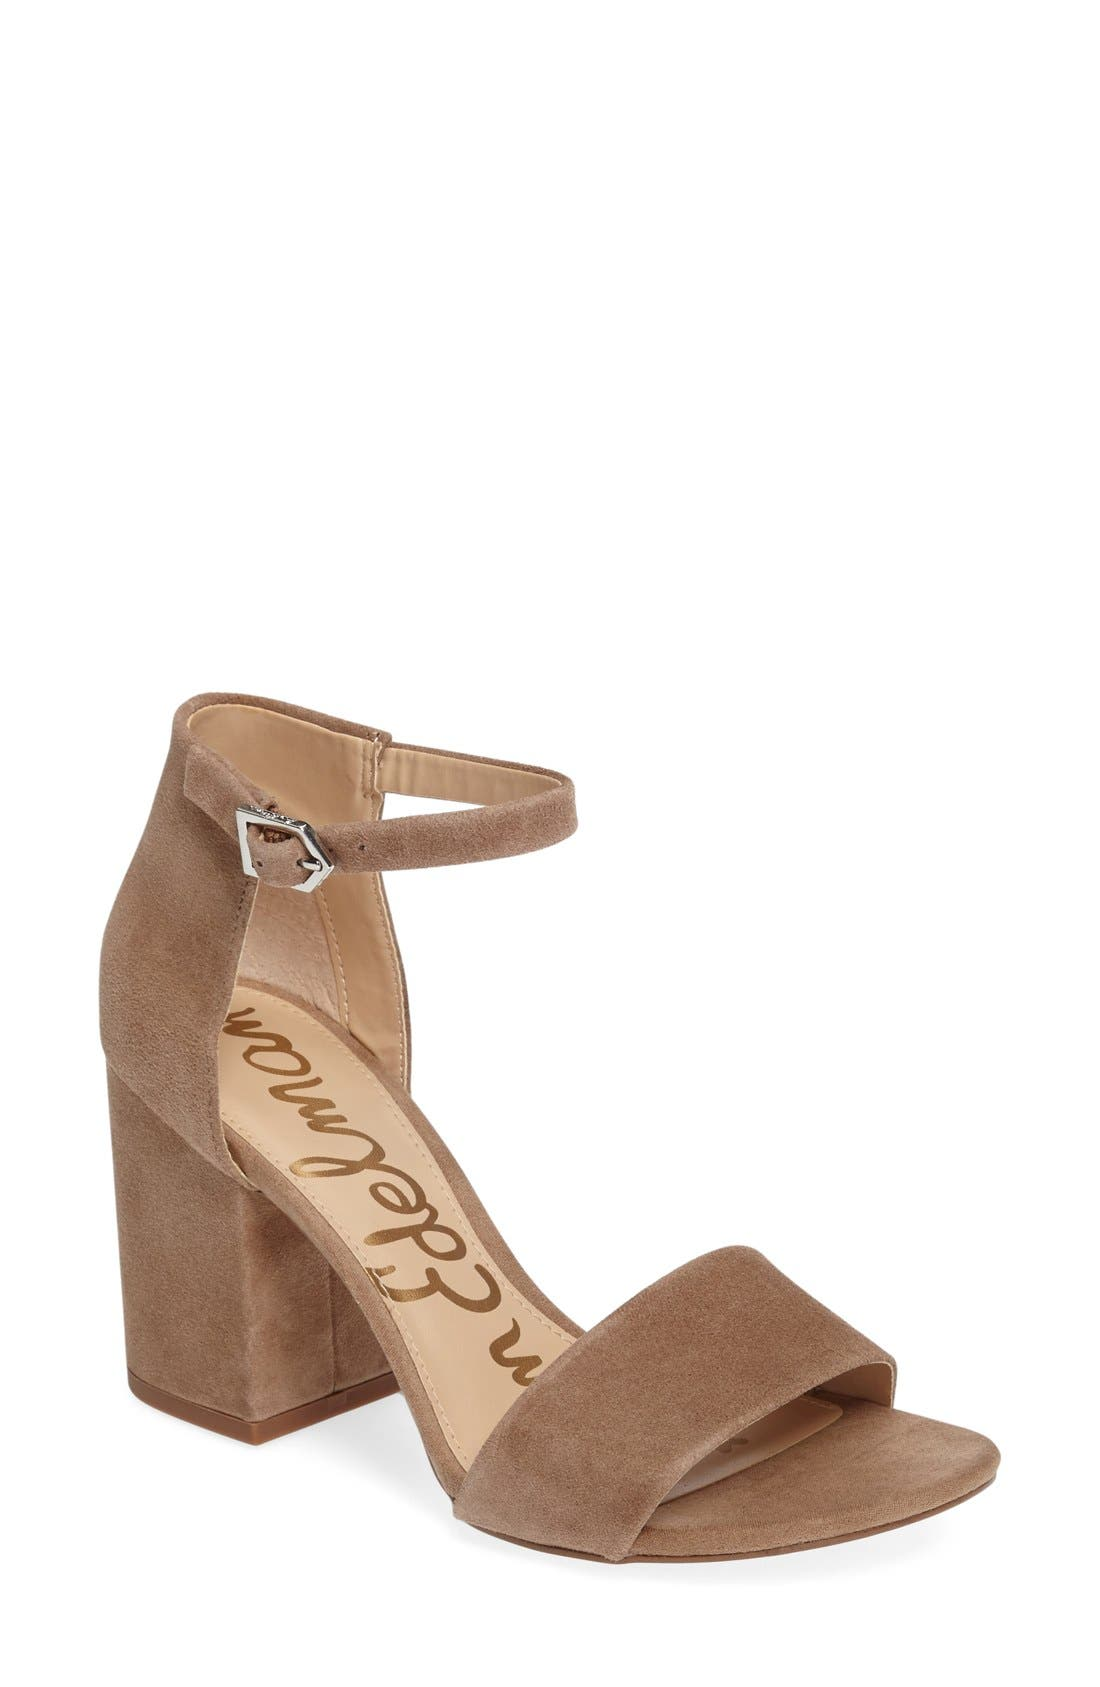 Alternate Image 1 Selected - Sam Edelman Torrence Ankle Strap Sandal (Women)